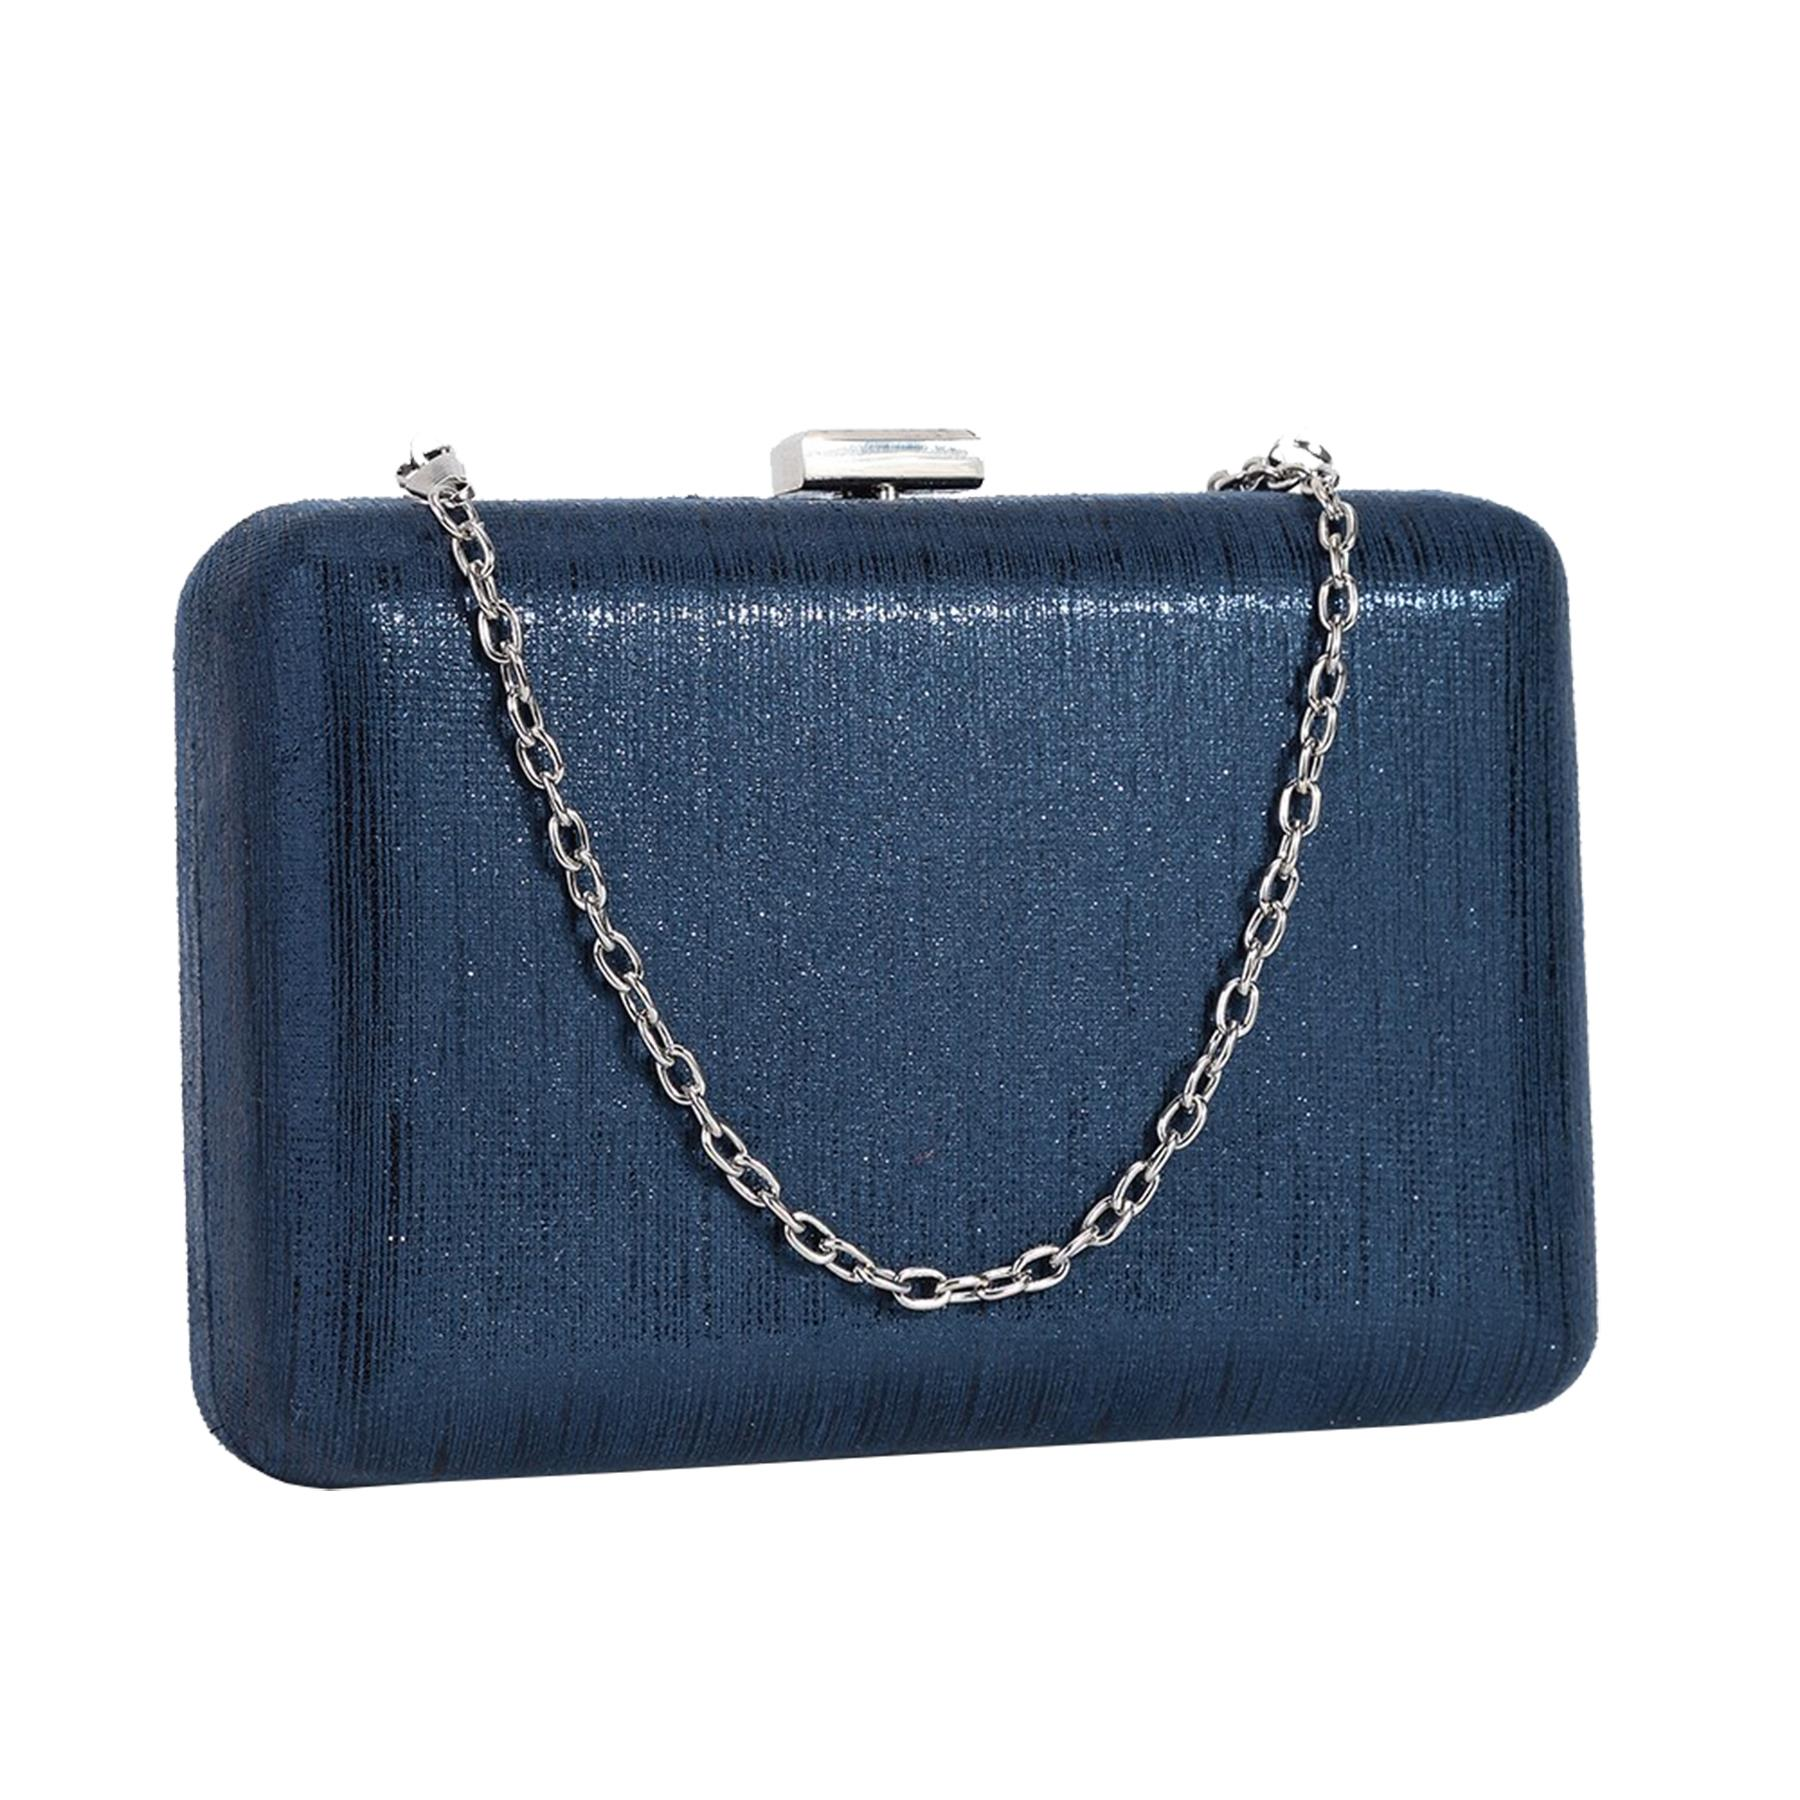 New-Ladies-Hard-Compact-Metallic-Effect-Faux-Leather-Party-Clutch-Bag thumbnail 6